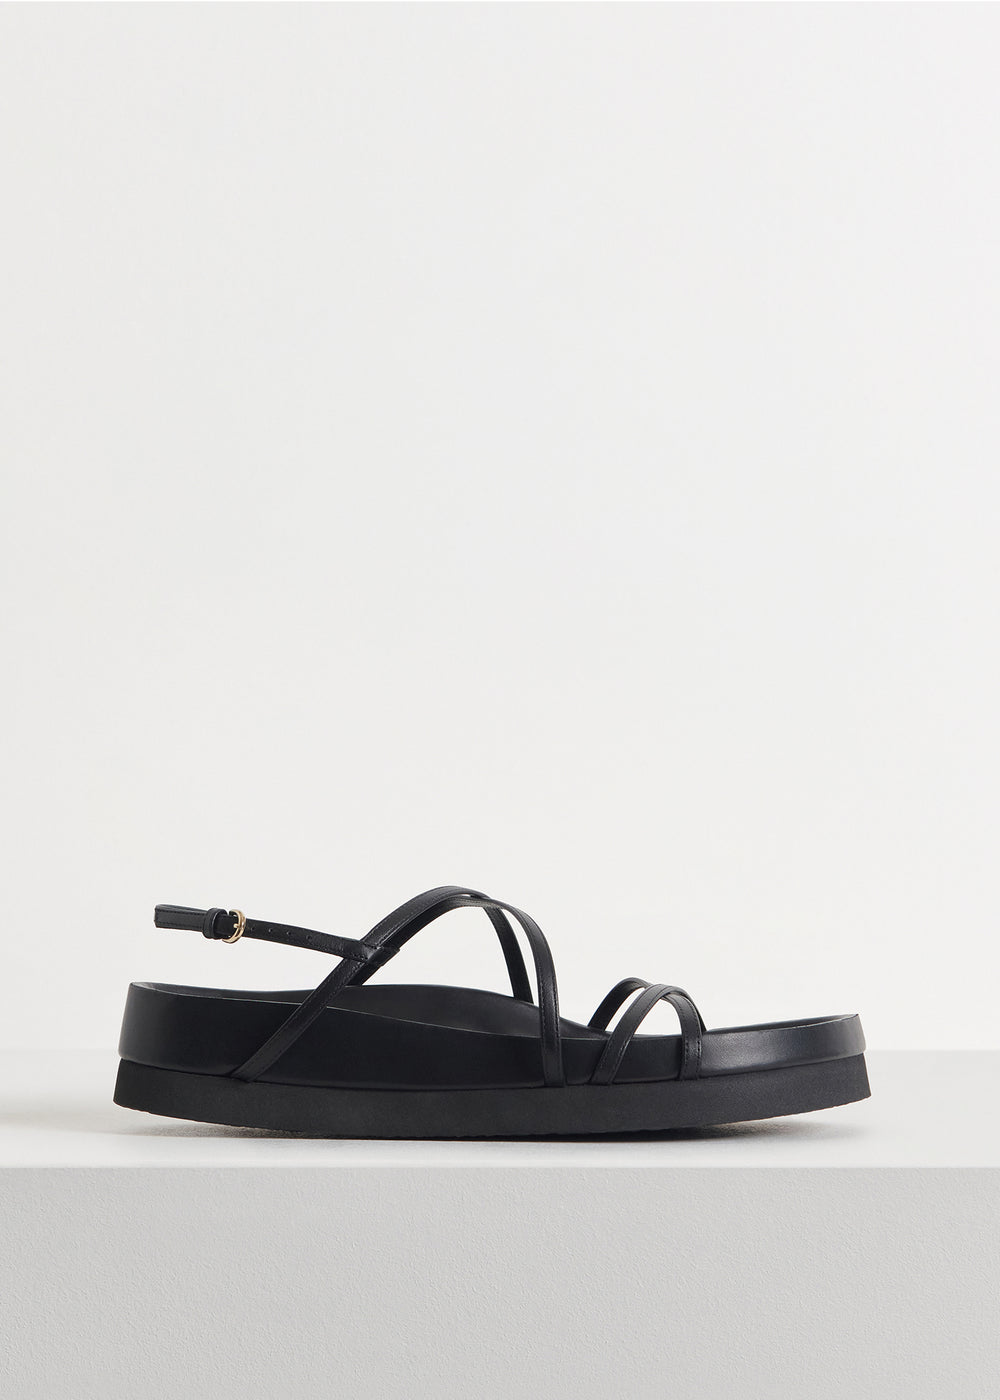 Thin Strap Sandal in Smooth Leather - Ivory in Black by Co Collections